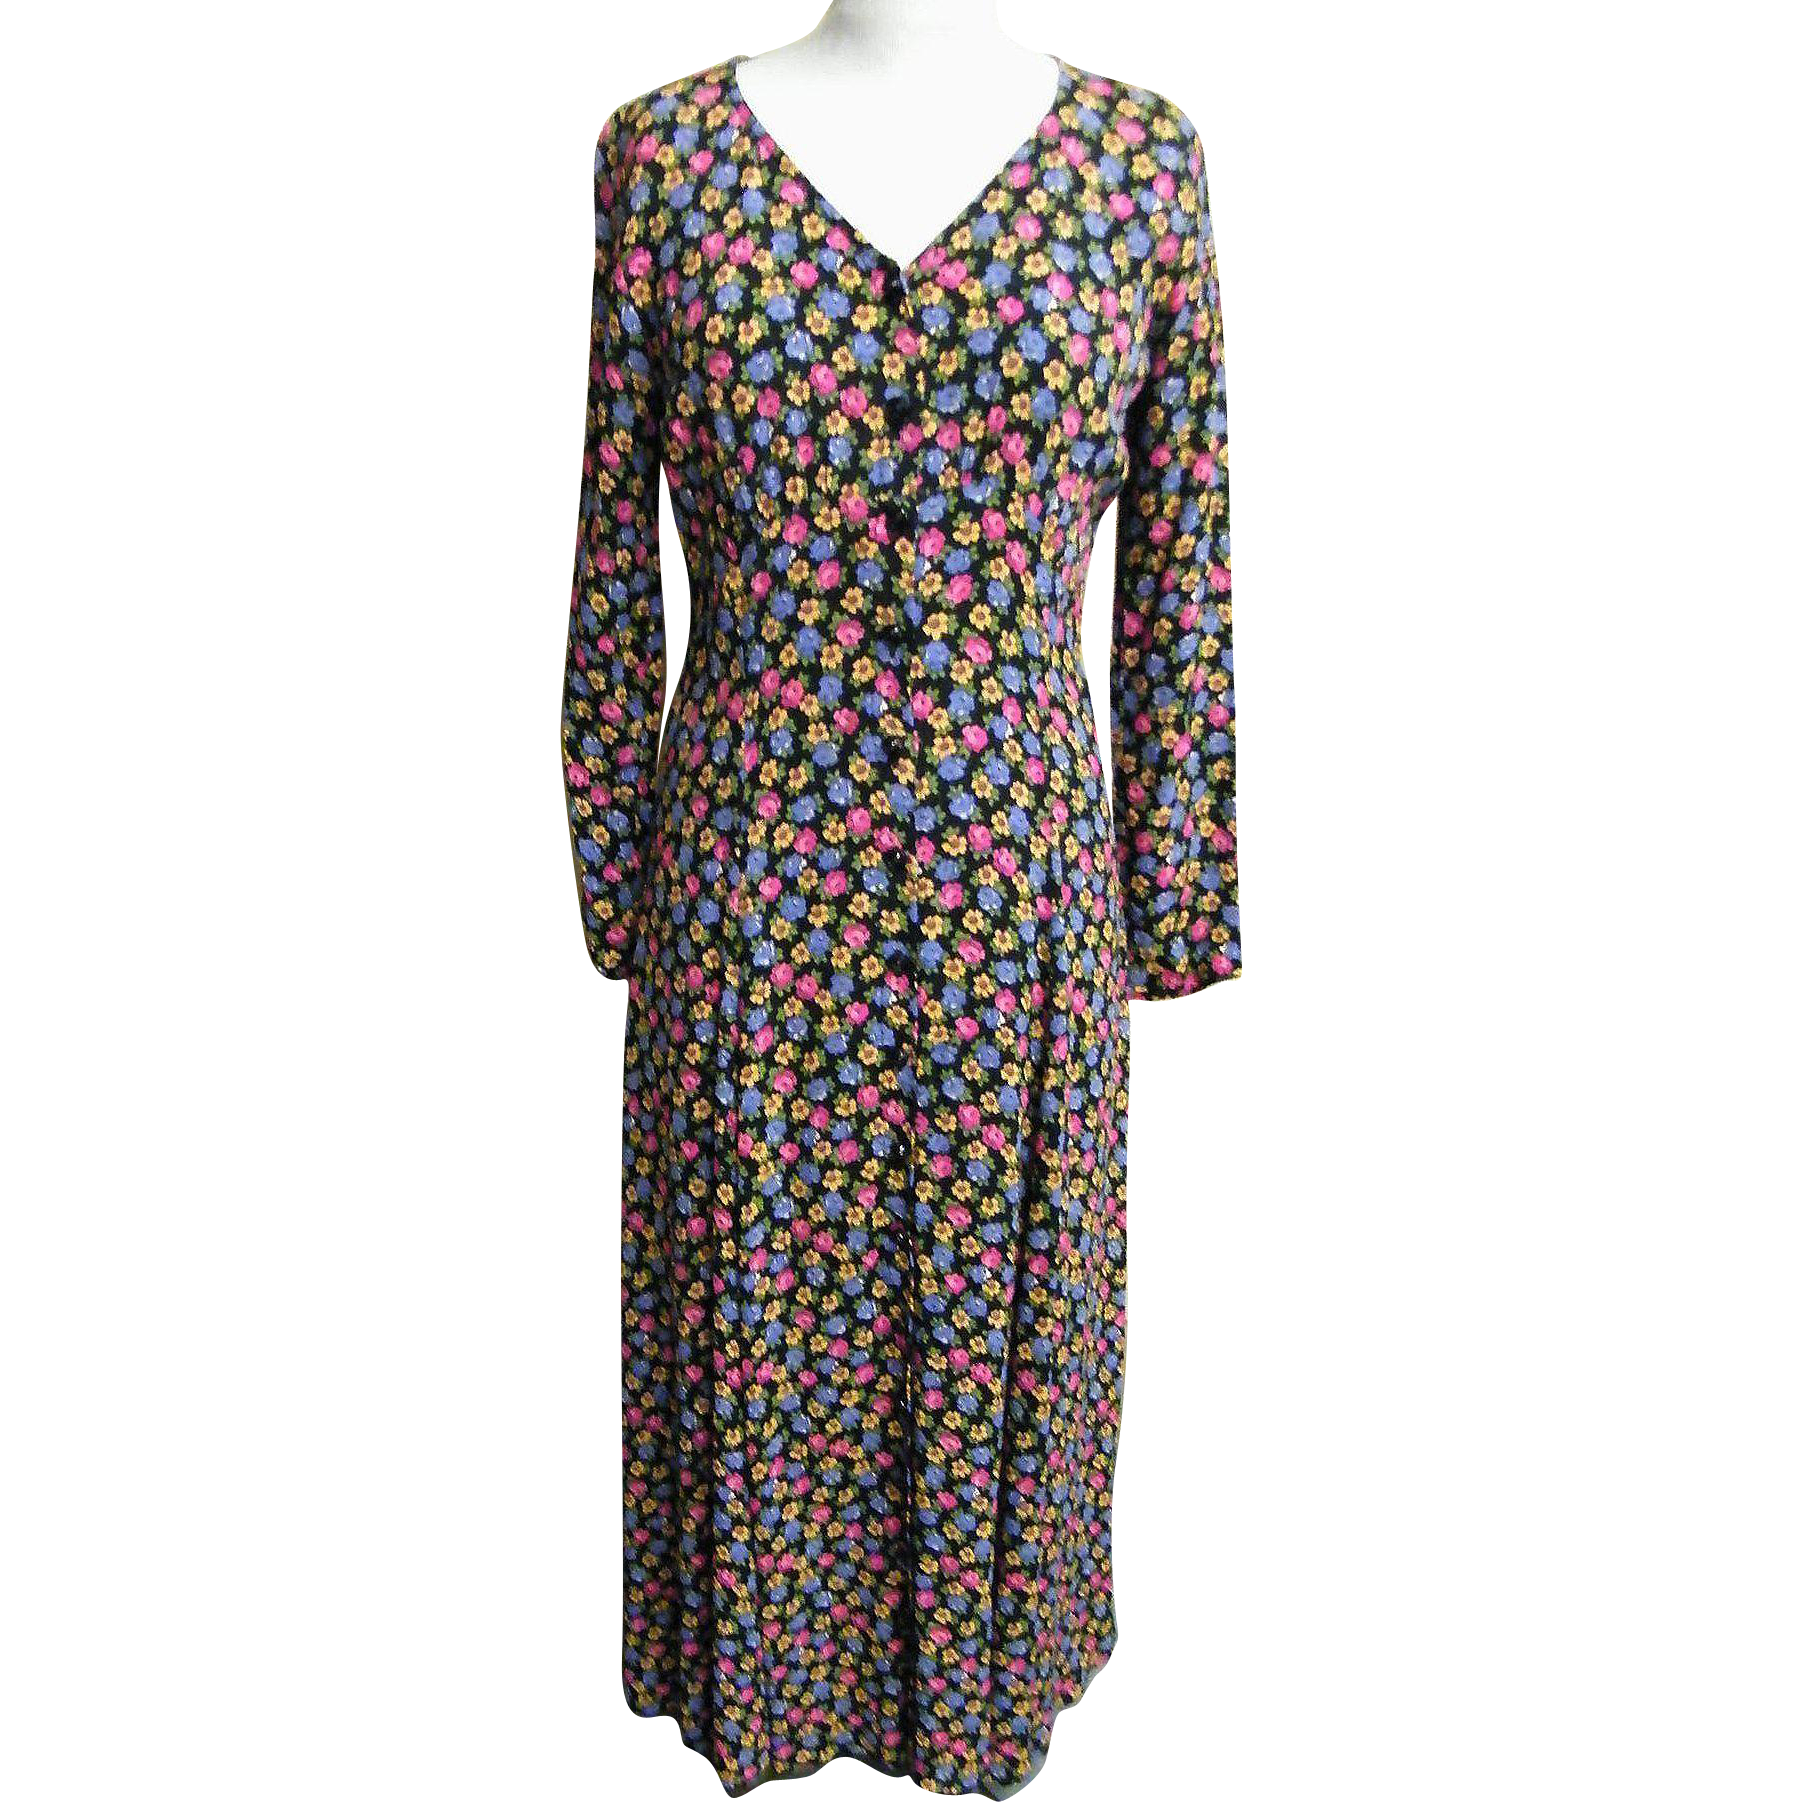 Maxi Dress..Betsey Johnson..Small Liberty Style Floral On Black Ground..Rayon Crepe..Size Medium..Excellent Condition